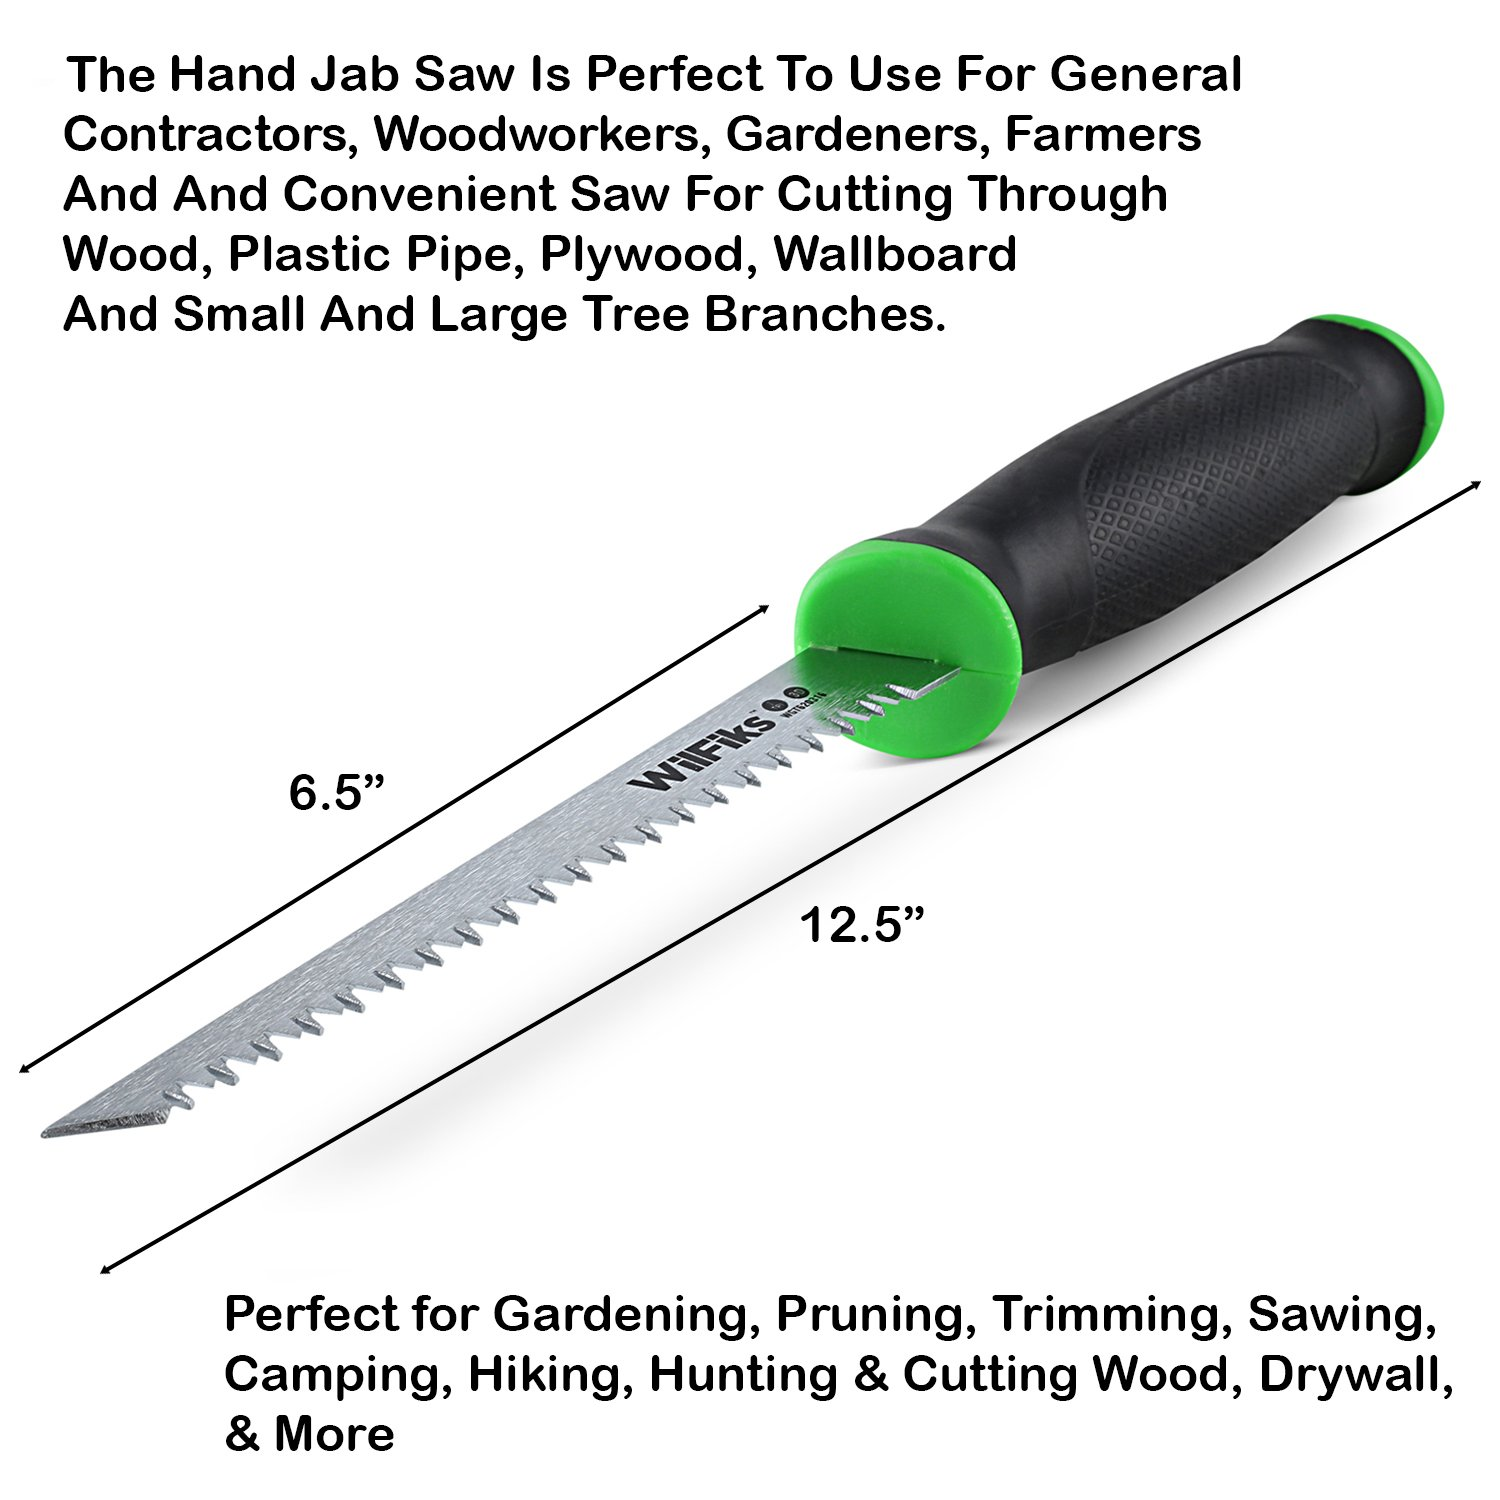 """WilFiks Razor Sharp 6.5"""" Pro Jab Saw, Drywall Hand Saw, Perfect For Sawing, Trimming, Gardening, Pruning & Cutting Wood, Wallboards & More, Comfortable Ergonomic Non-Slip Handle, Has A Sharpened Tip by WilFiks (Image #3)"""